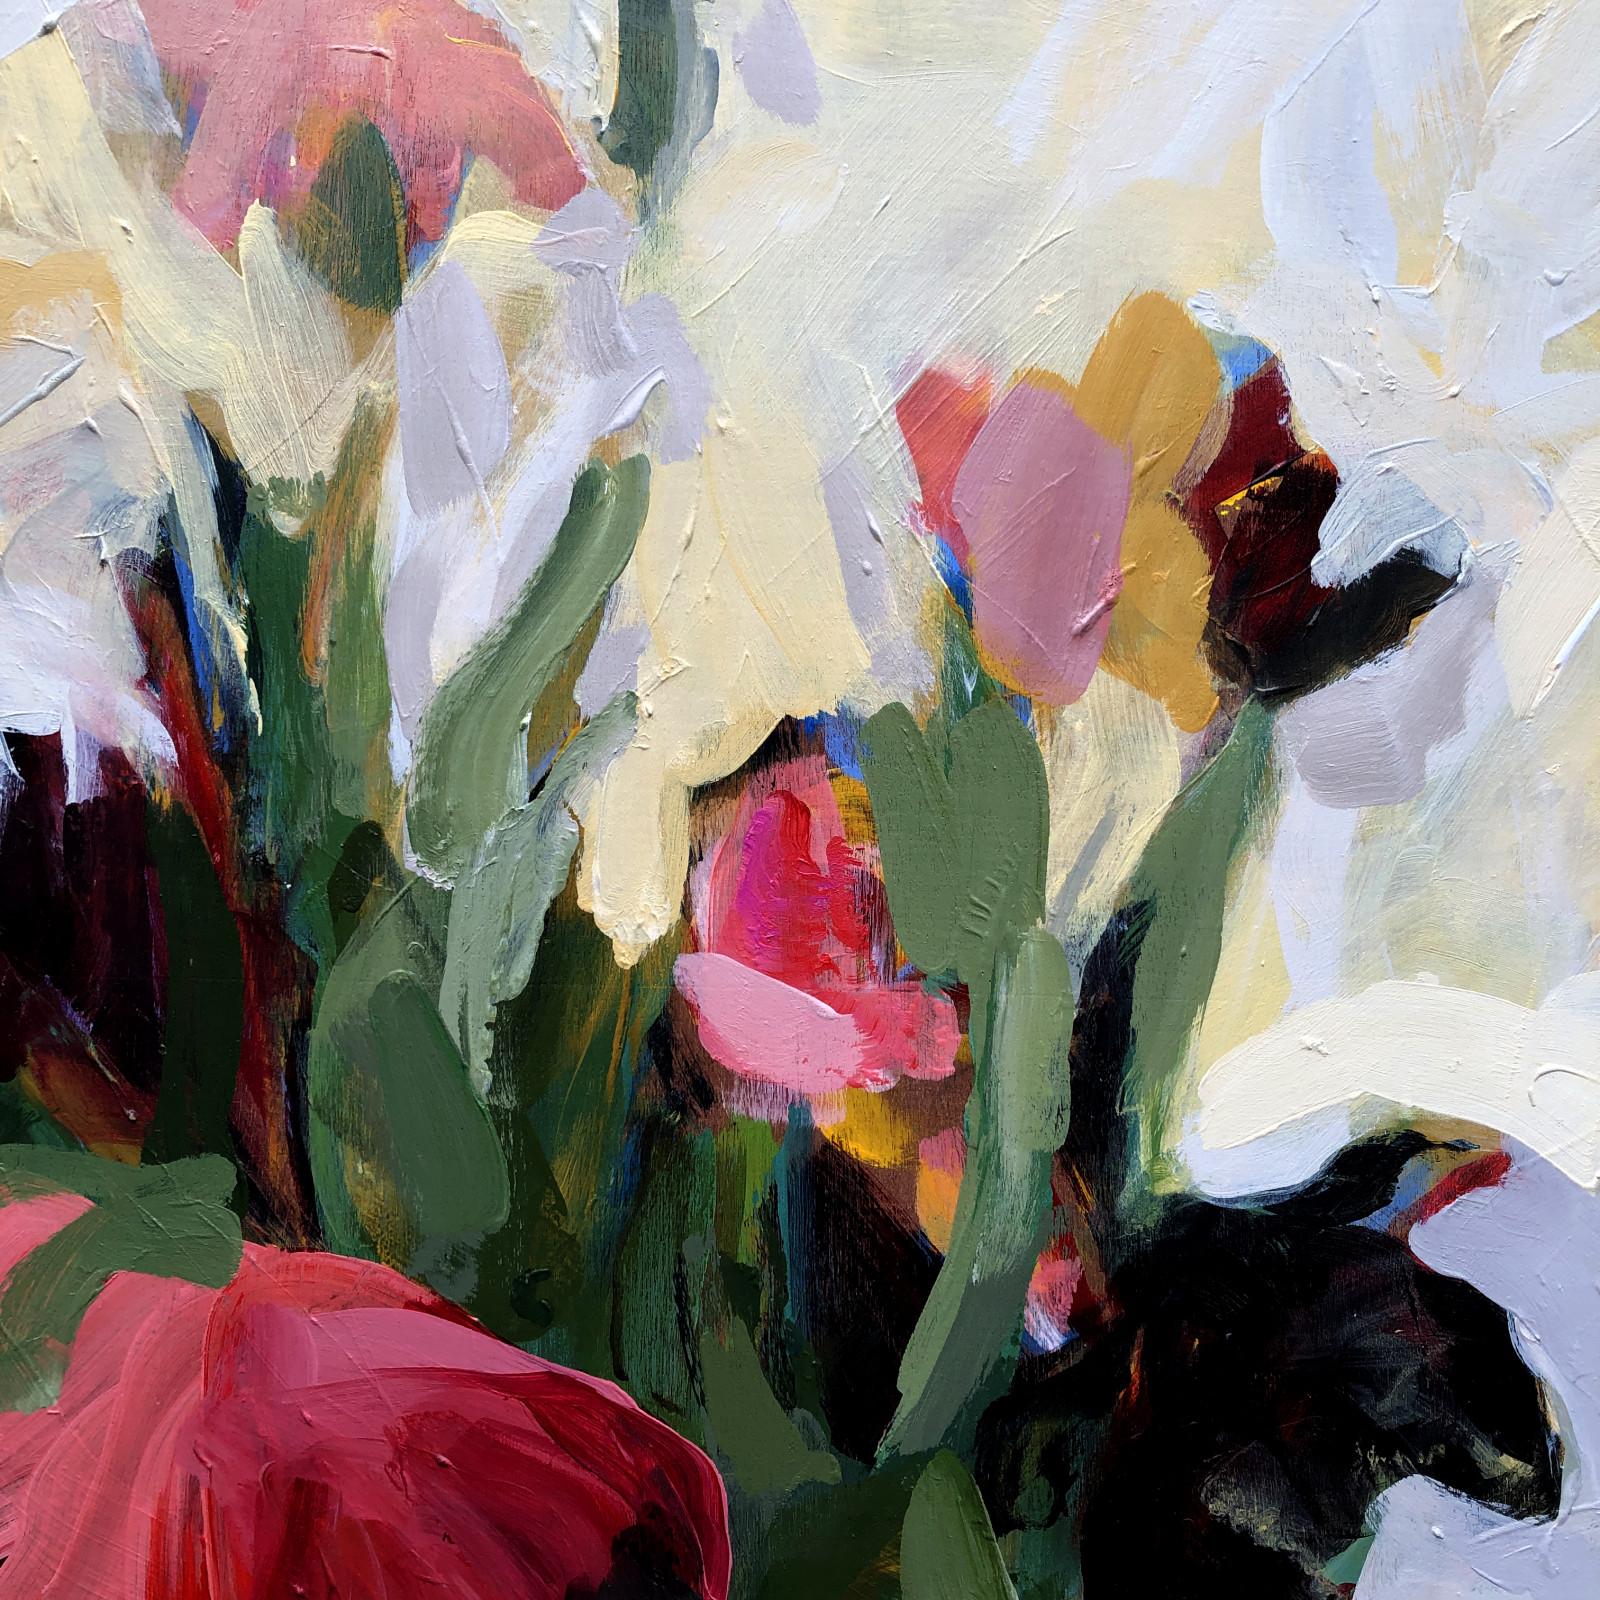 Abundant Tulip Flowers in Vase | Original Artwork | Detail